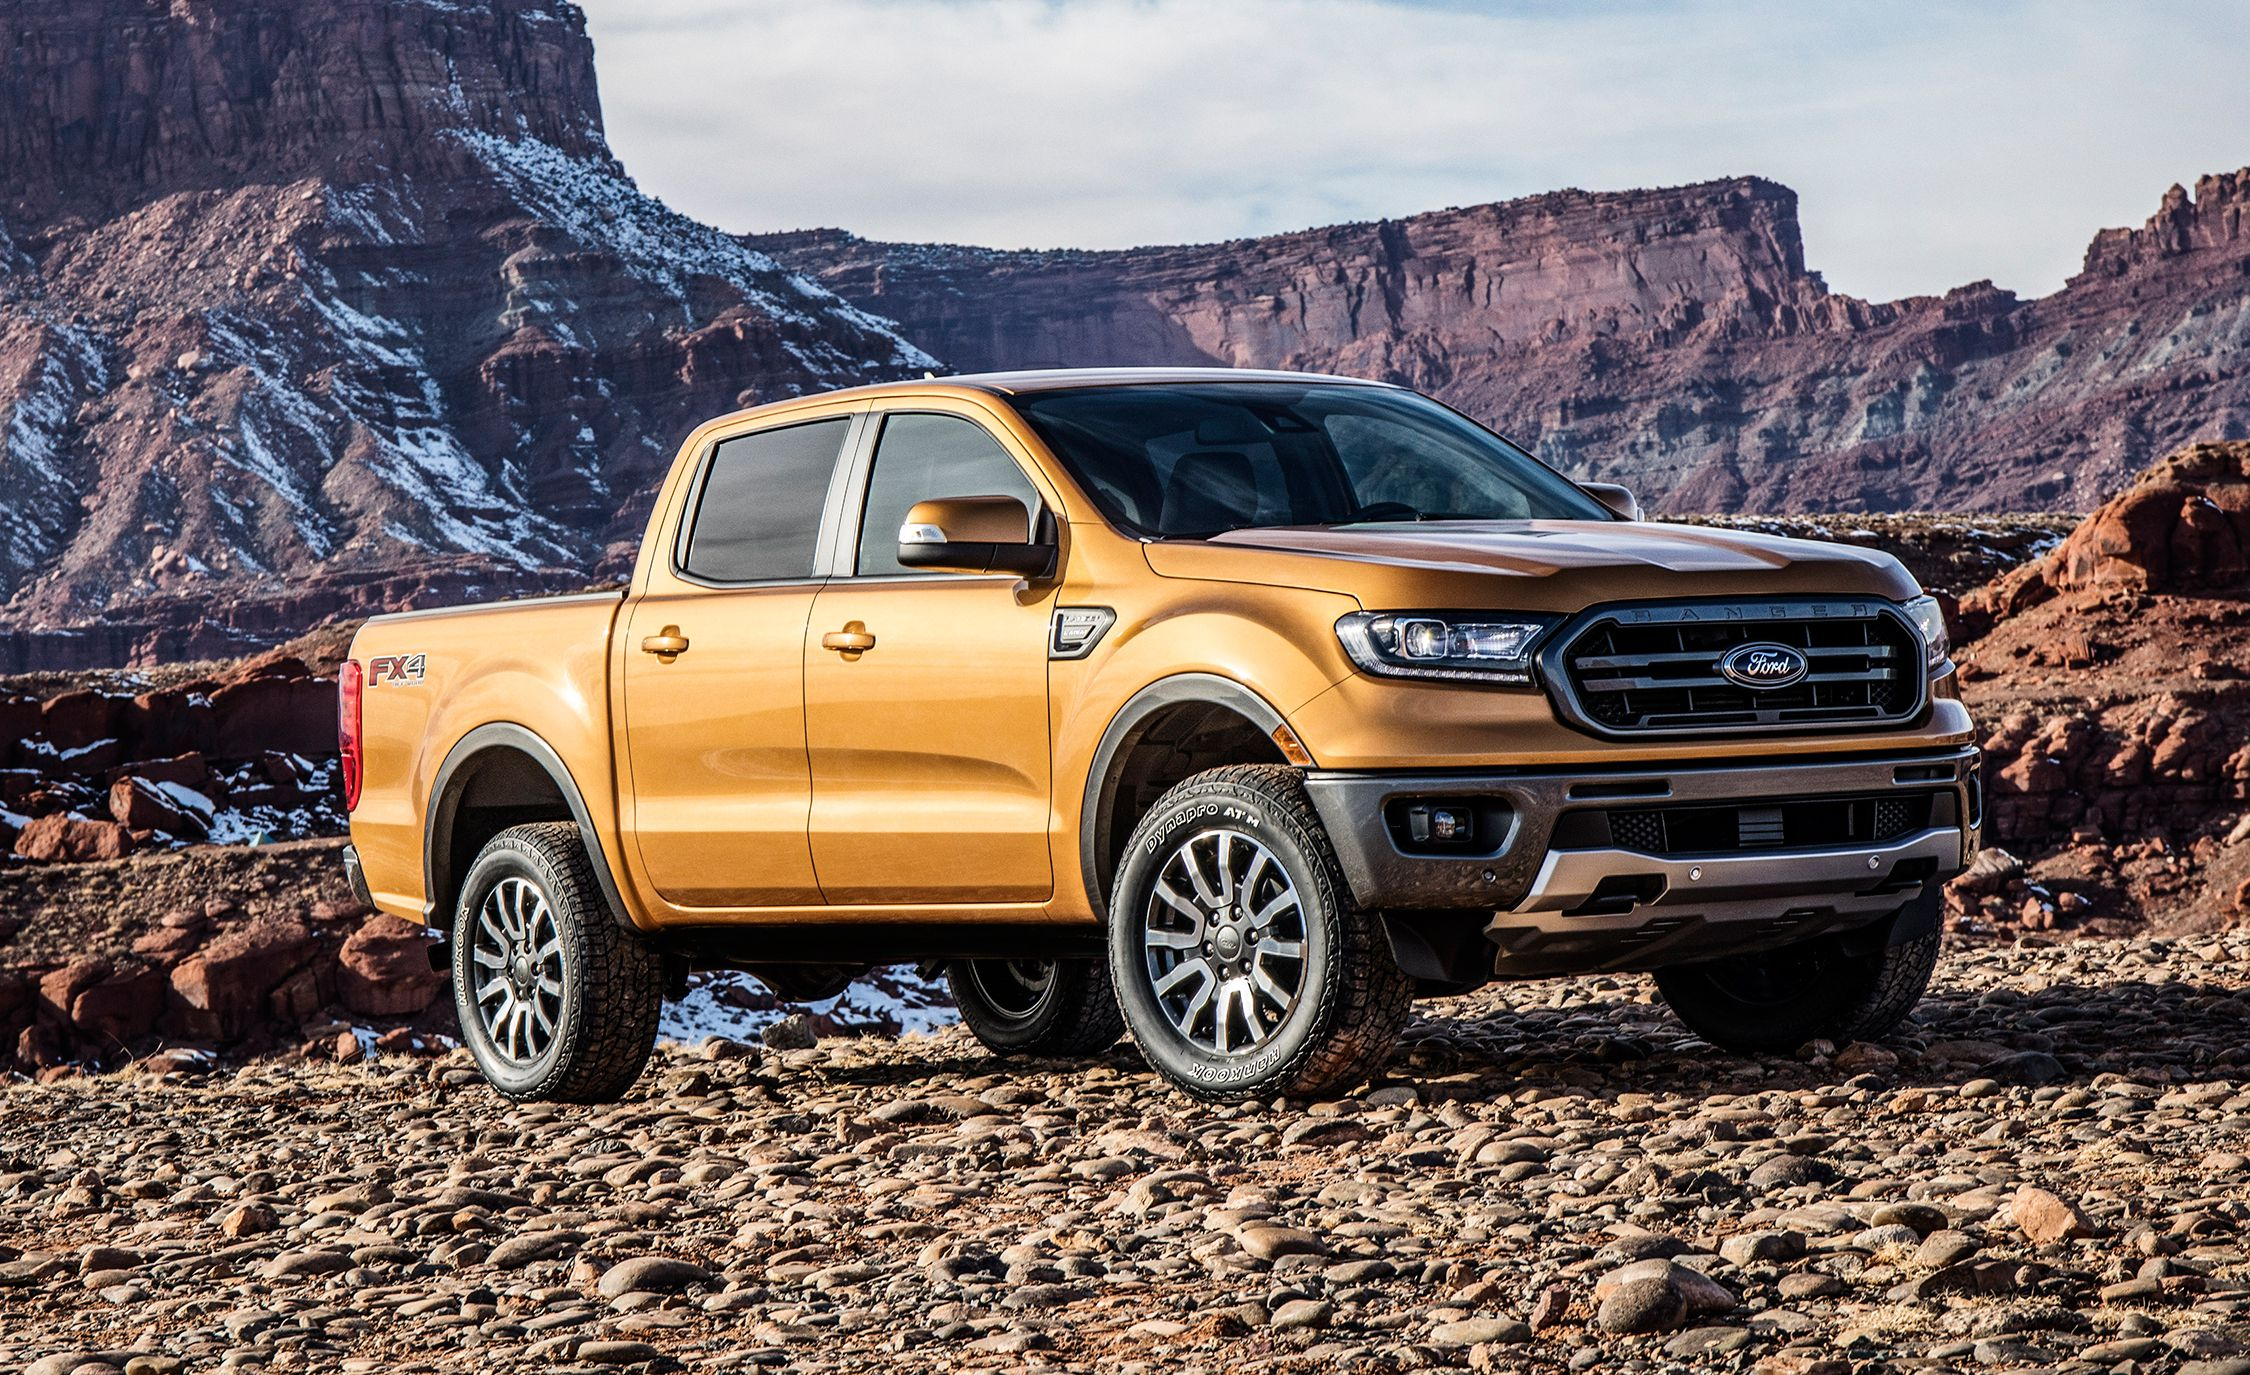 Best Used Cars Under 5000 Awesome 34 Off Road Ready Trucks Suvs and Crossovers In 2019 – 4wd Rigs